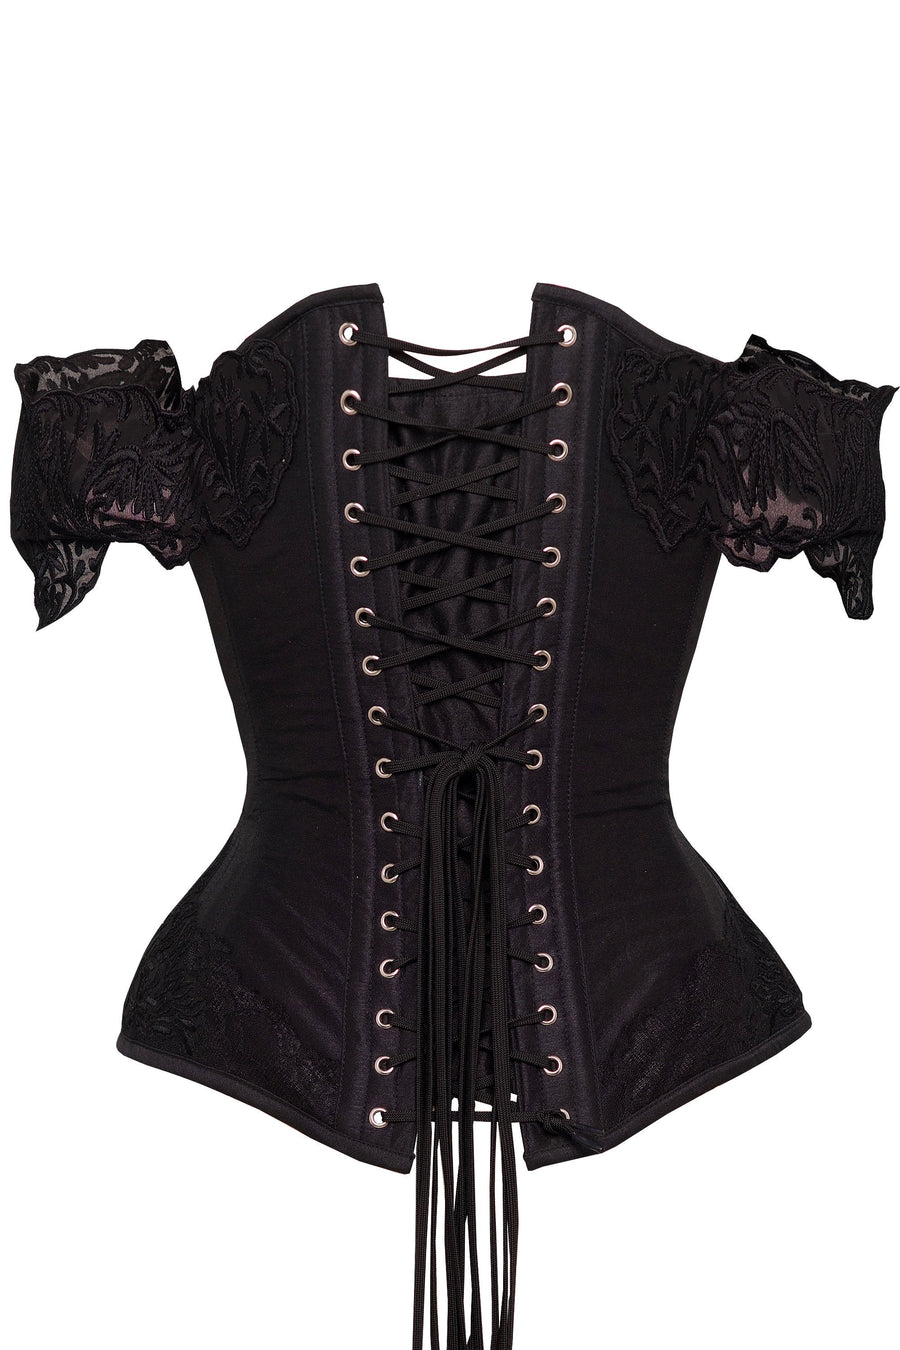 Black Corset Top with Lace Cap Sleeve